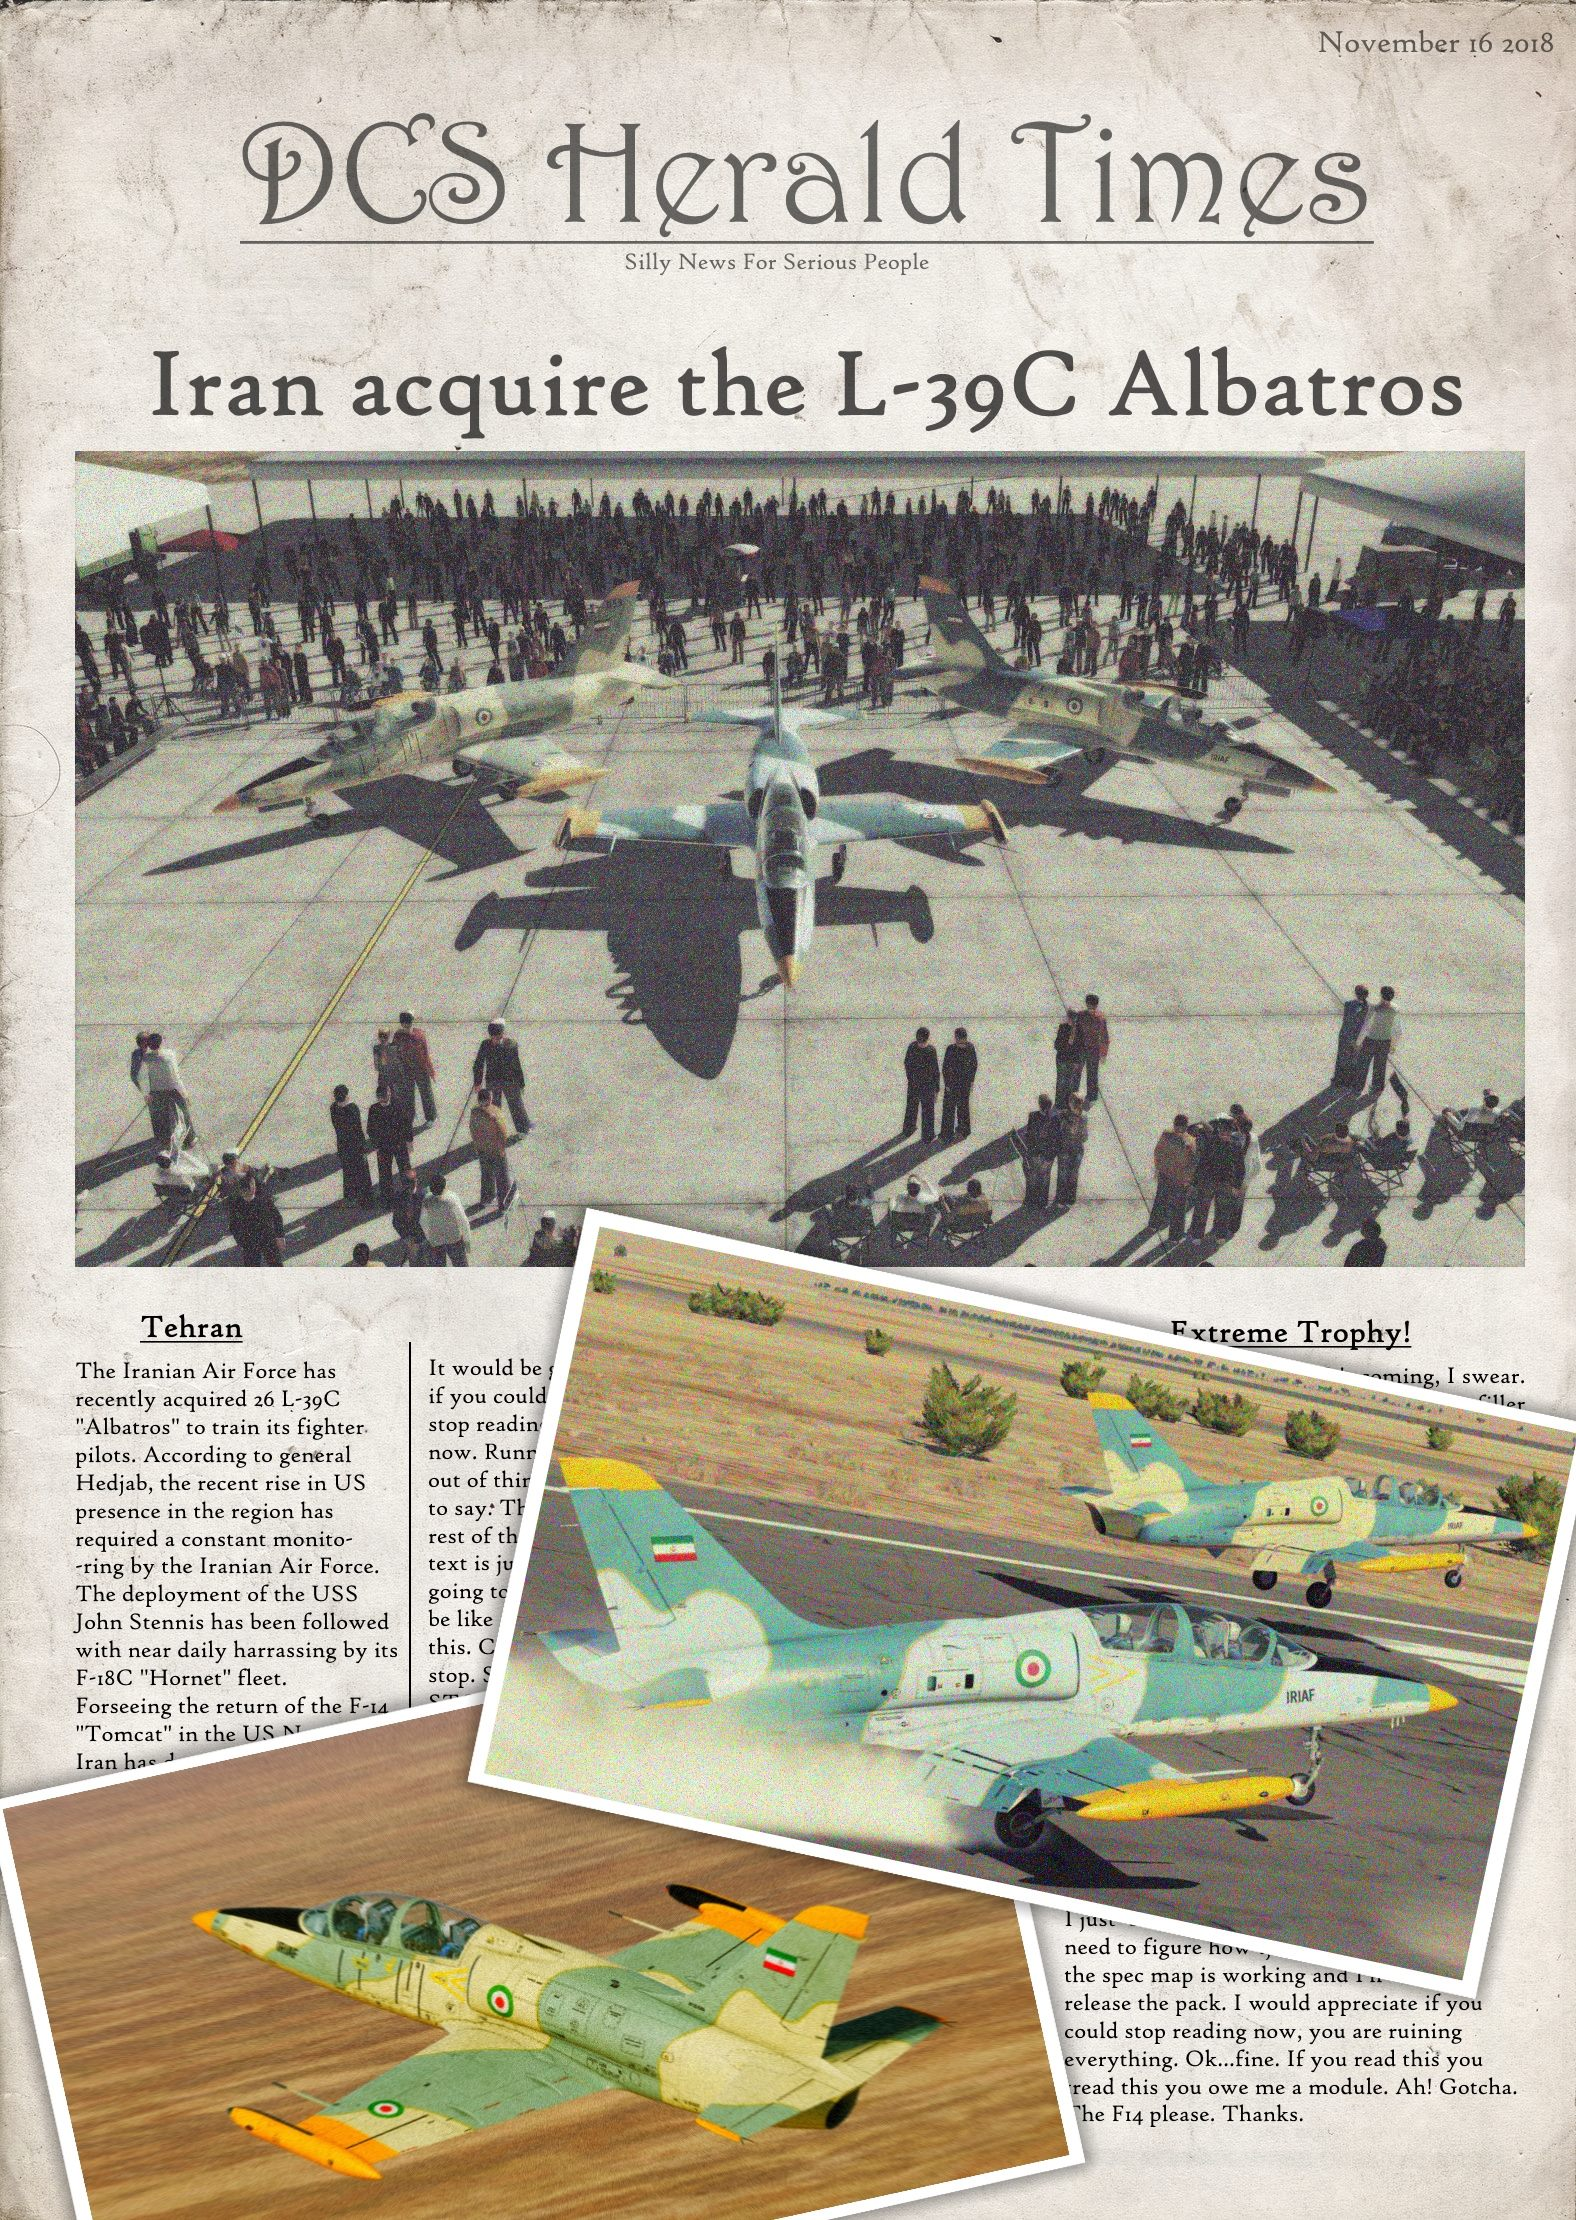 IRIAF L-39C Liveries